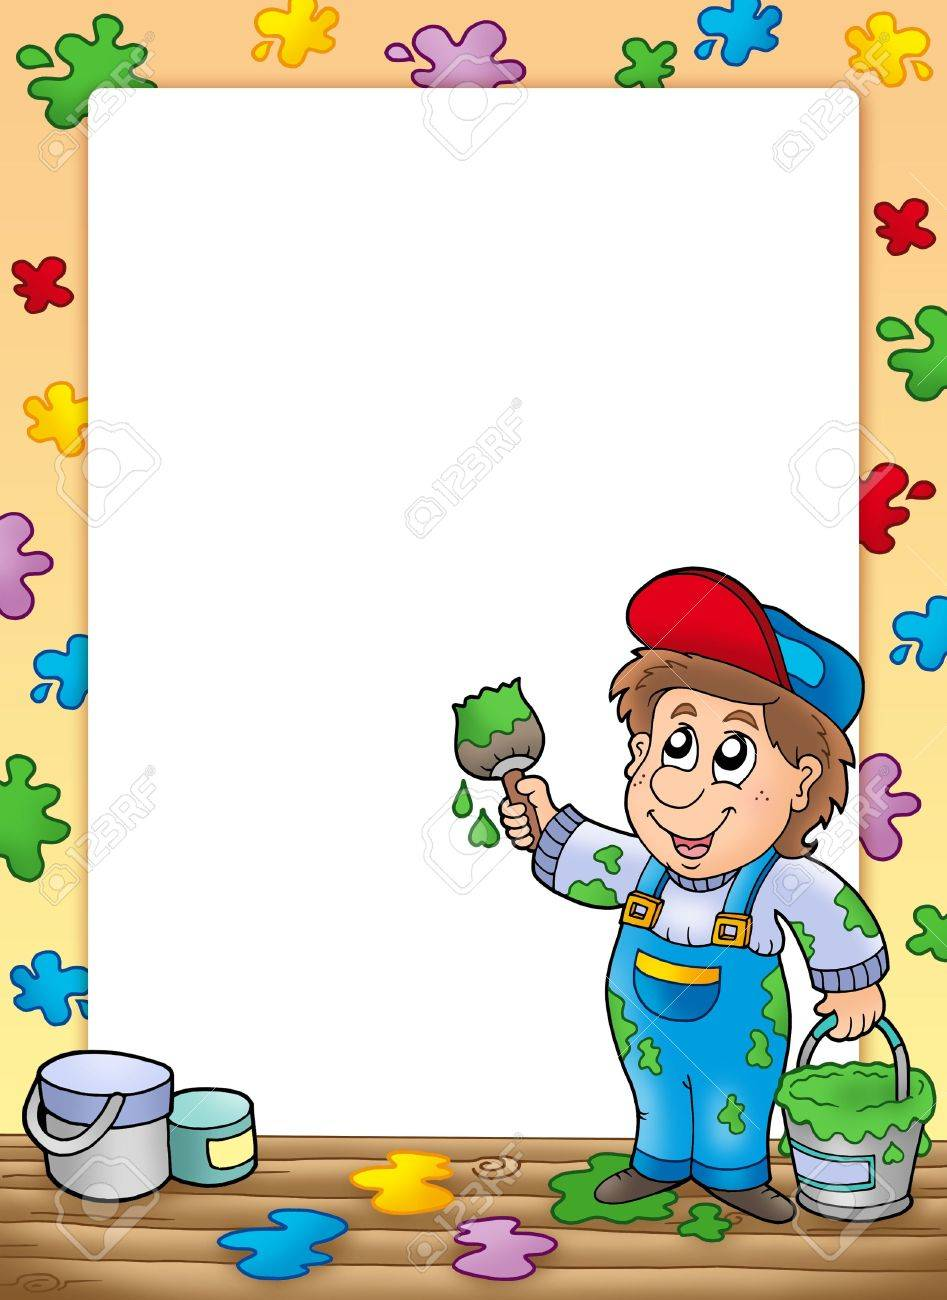 Frame with cartoon house painter - color illustration. Stock Illustration - 6123987